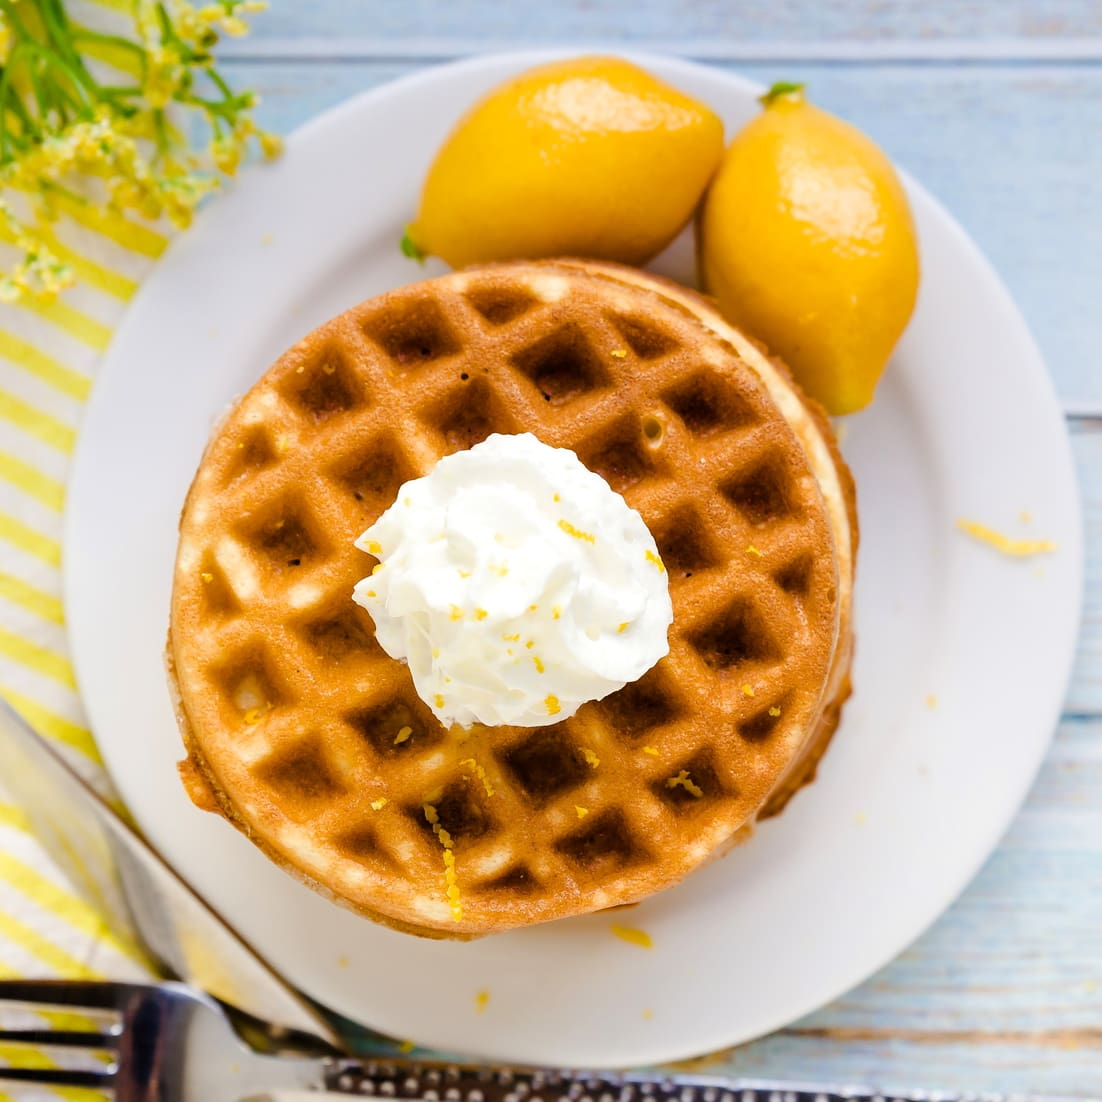 Lemon Cake Chaffles with whip cream served on a plate